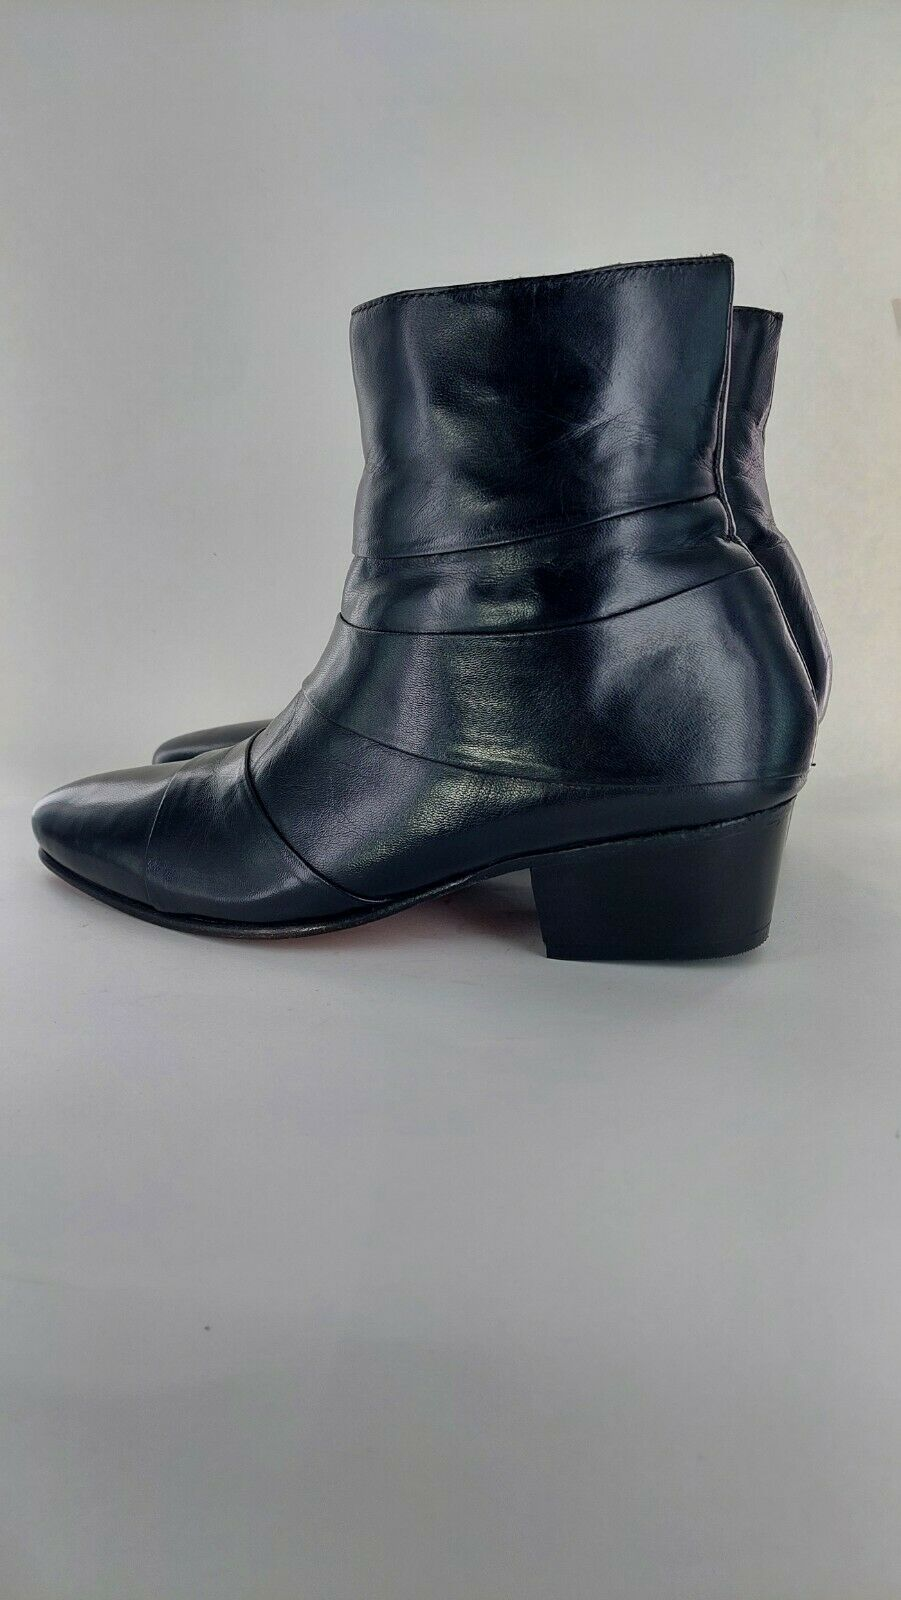 Club Cubano ANGELO Mens Leather Smart Cuban Heel Ankle Boots UK Size 762